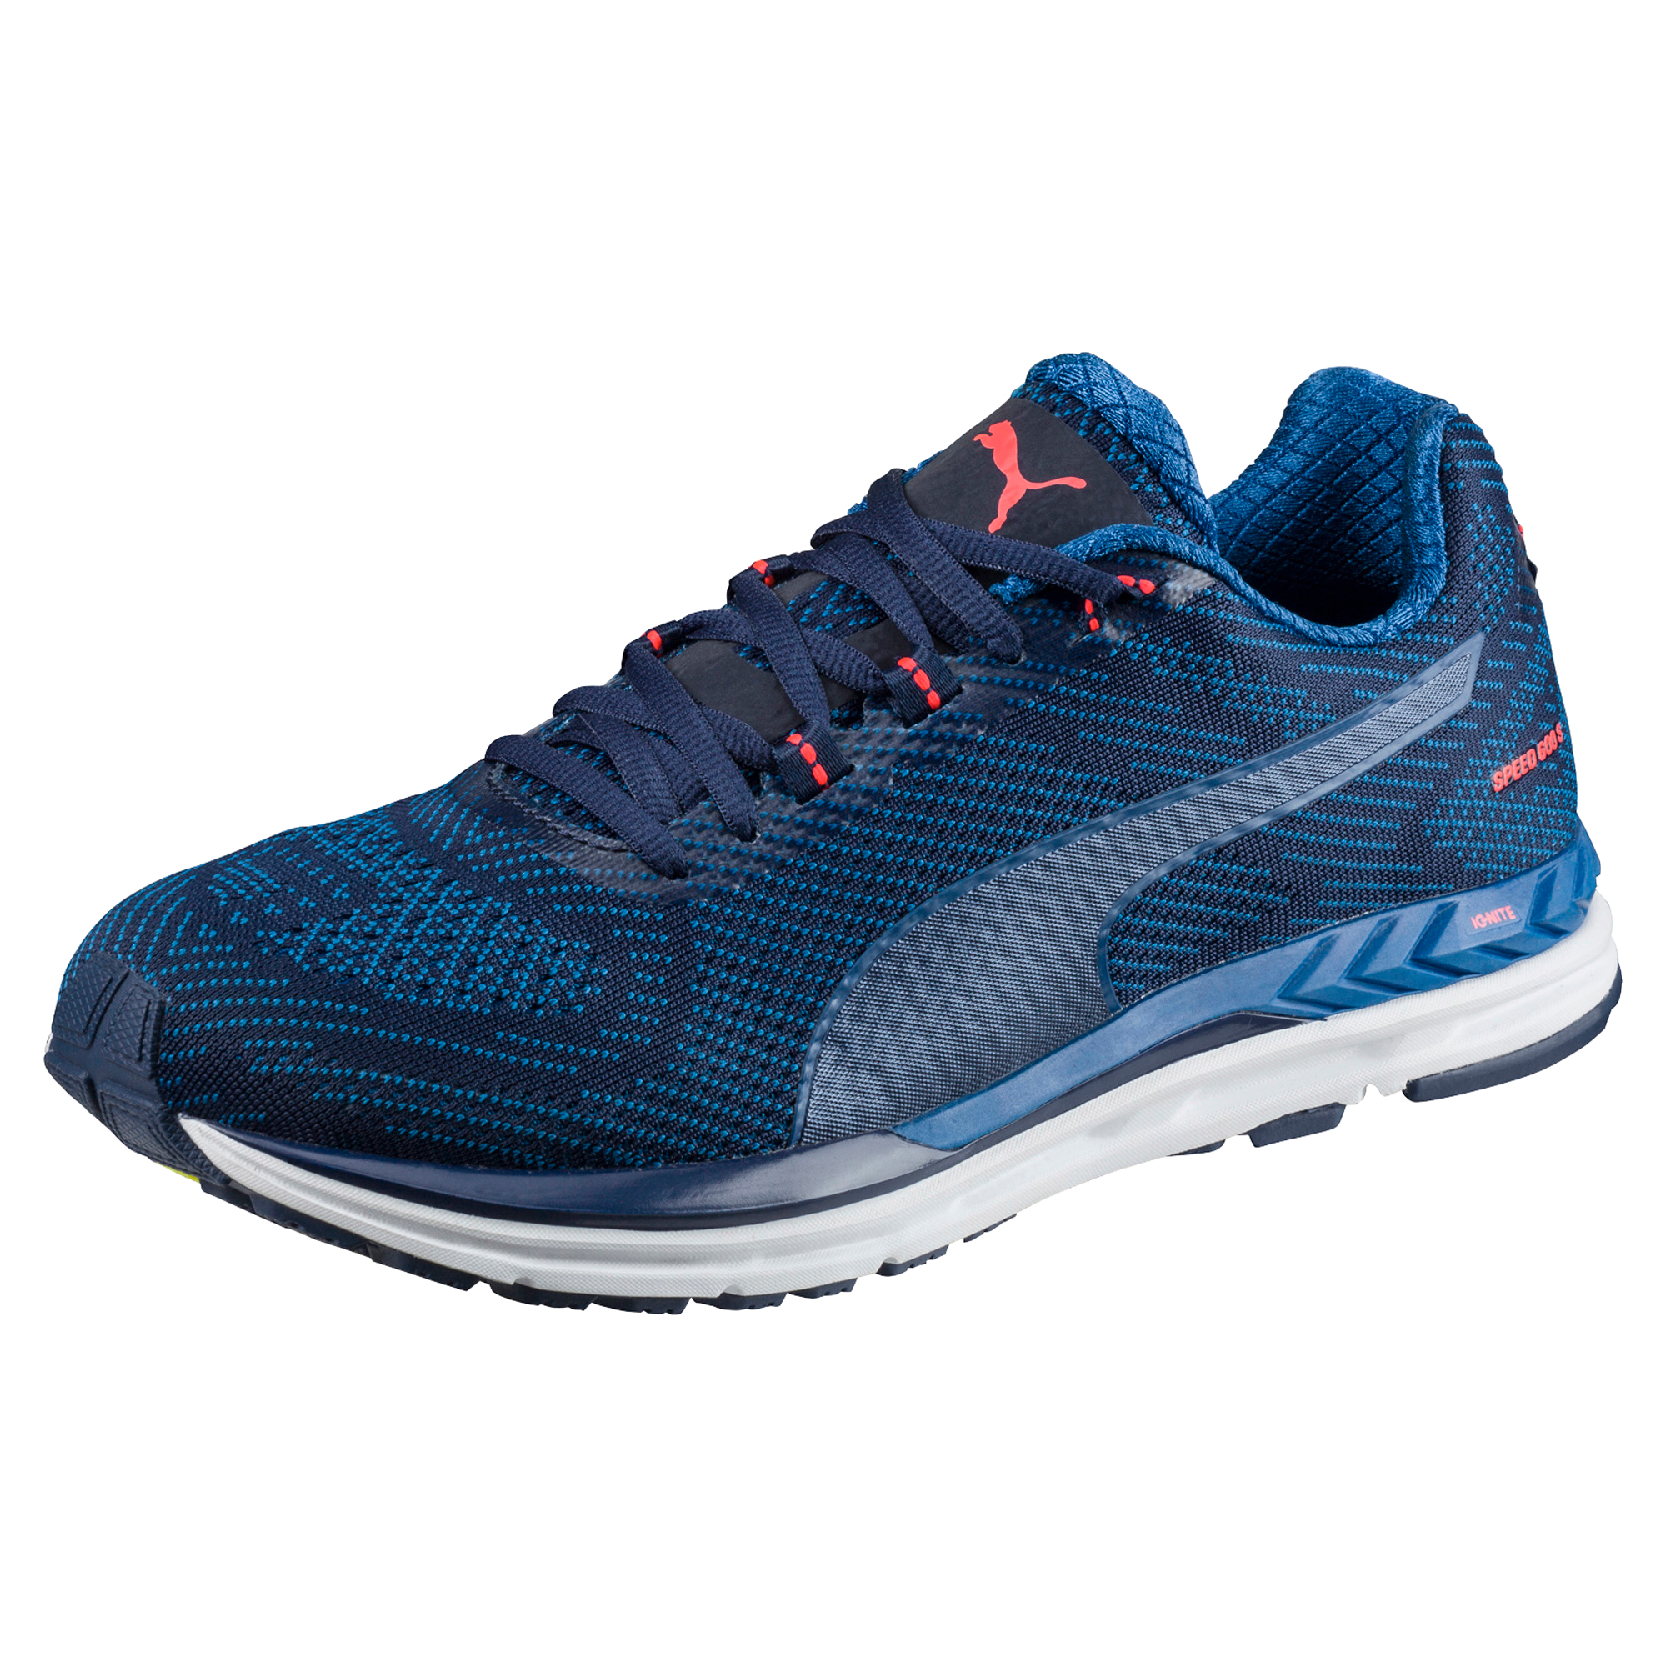 Chaussures de running | Puma | Speed 600 S Ignite Shoes